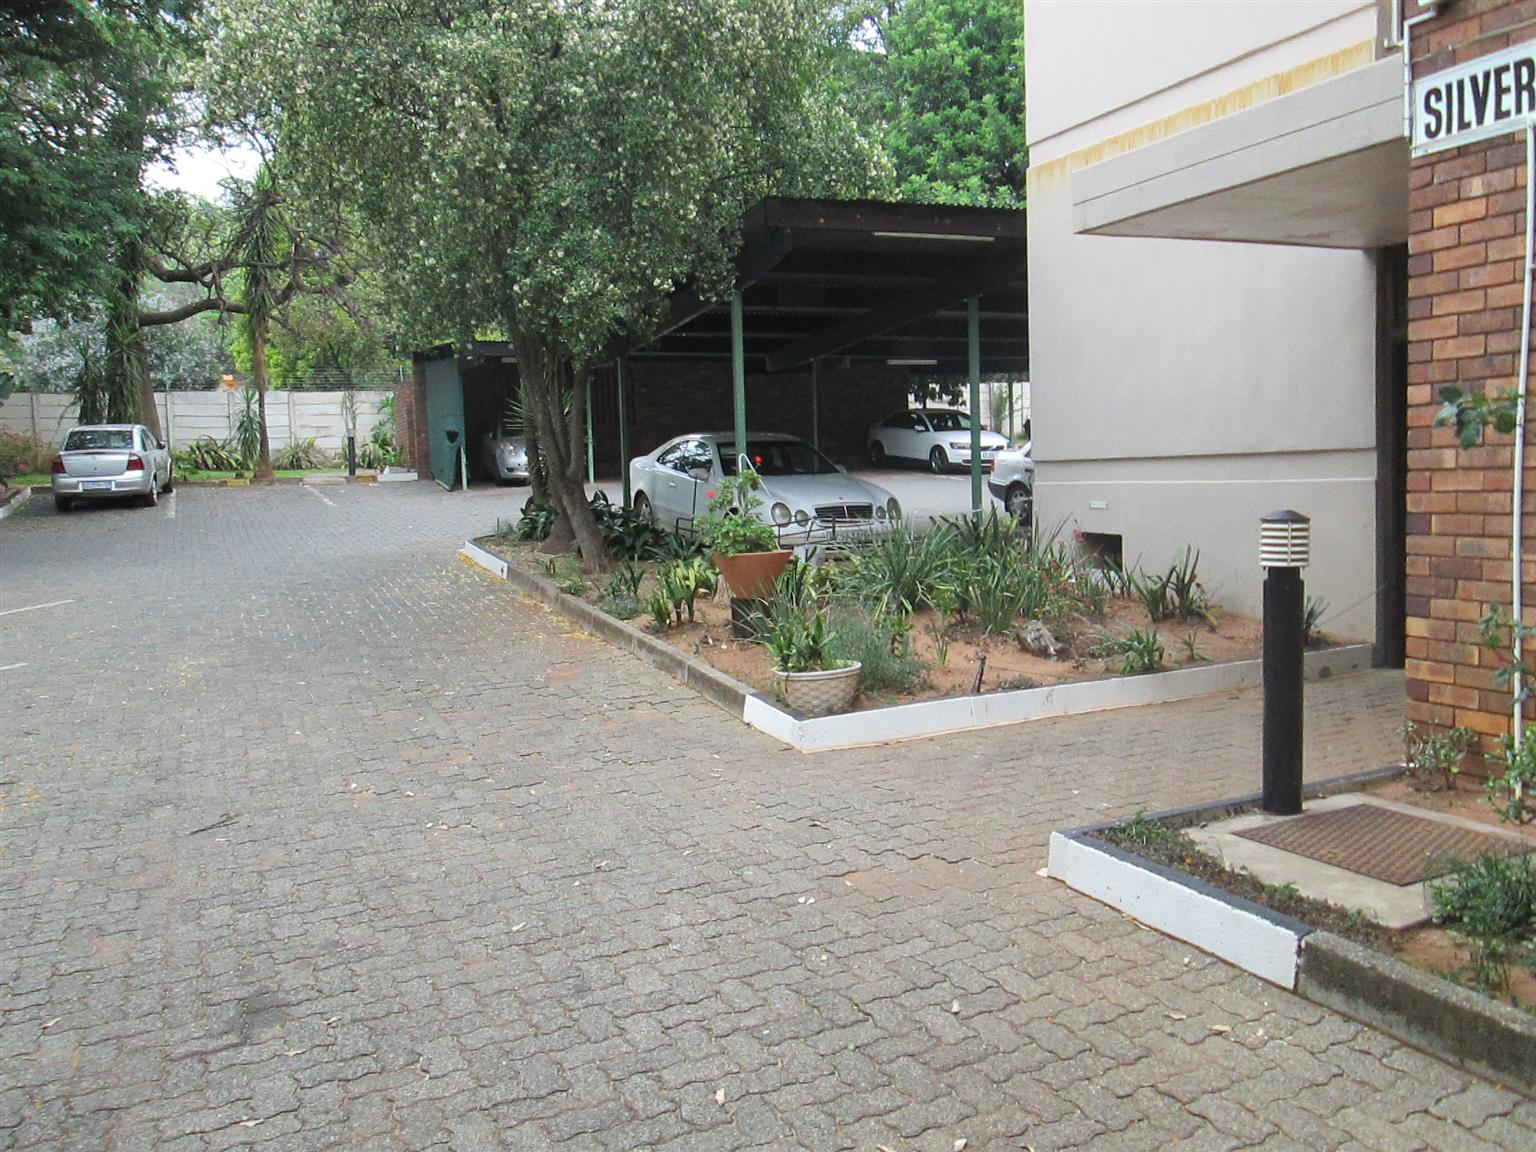 Silverton. Flat for sale R430 000. Ground floor, one bedroom one bathroom.